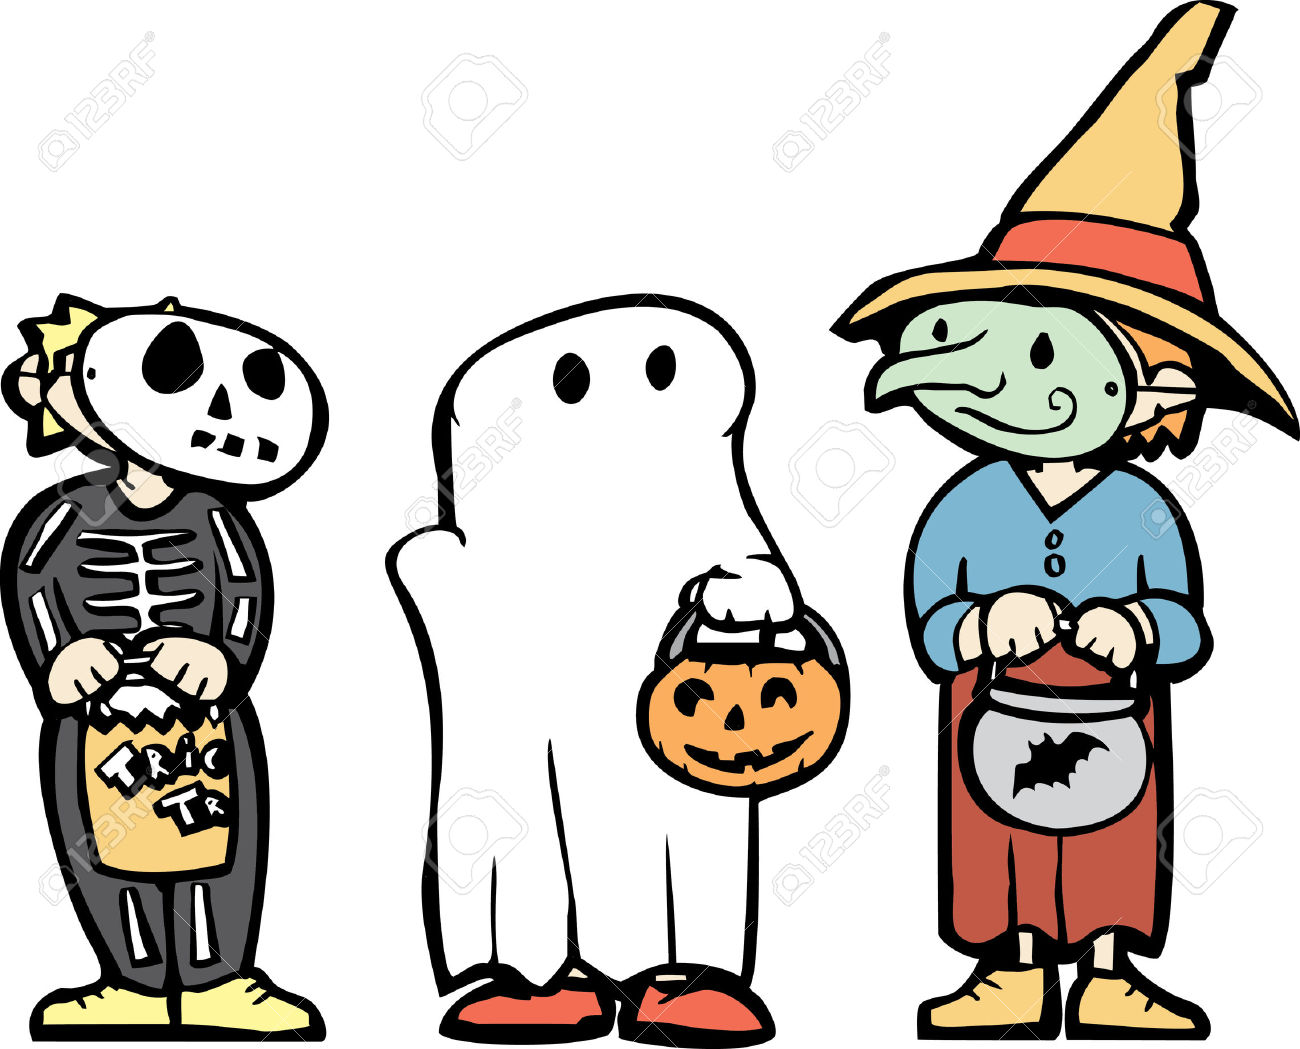 1300x1049 Photos Cartoon Pictures Of Halloween Characters,